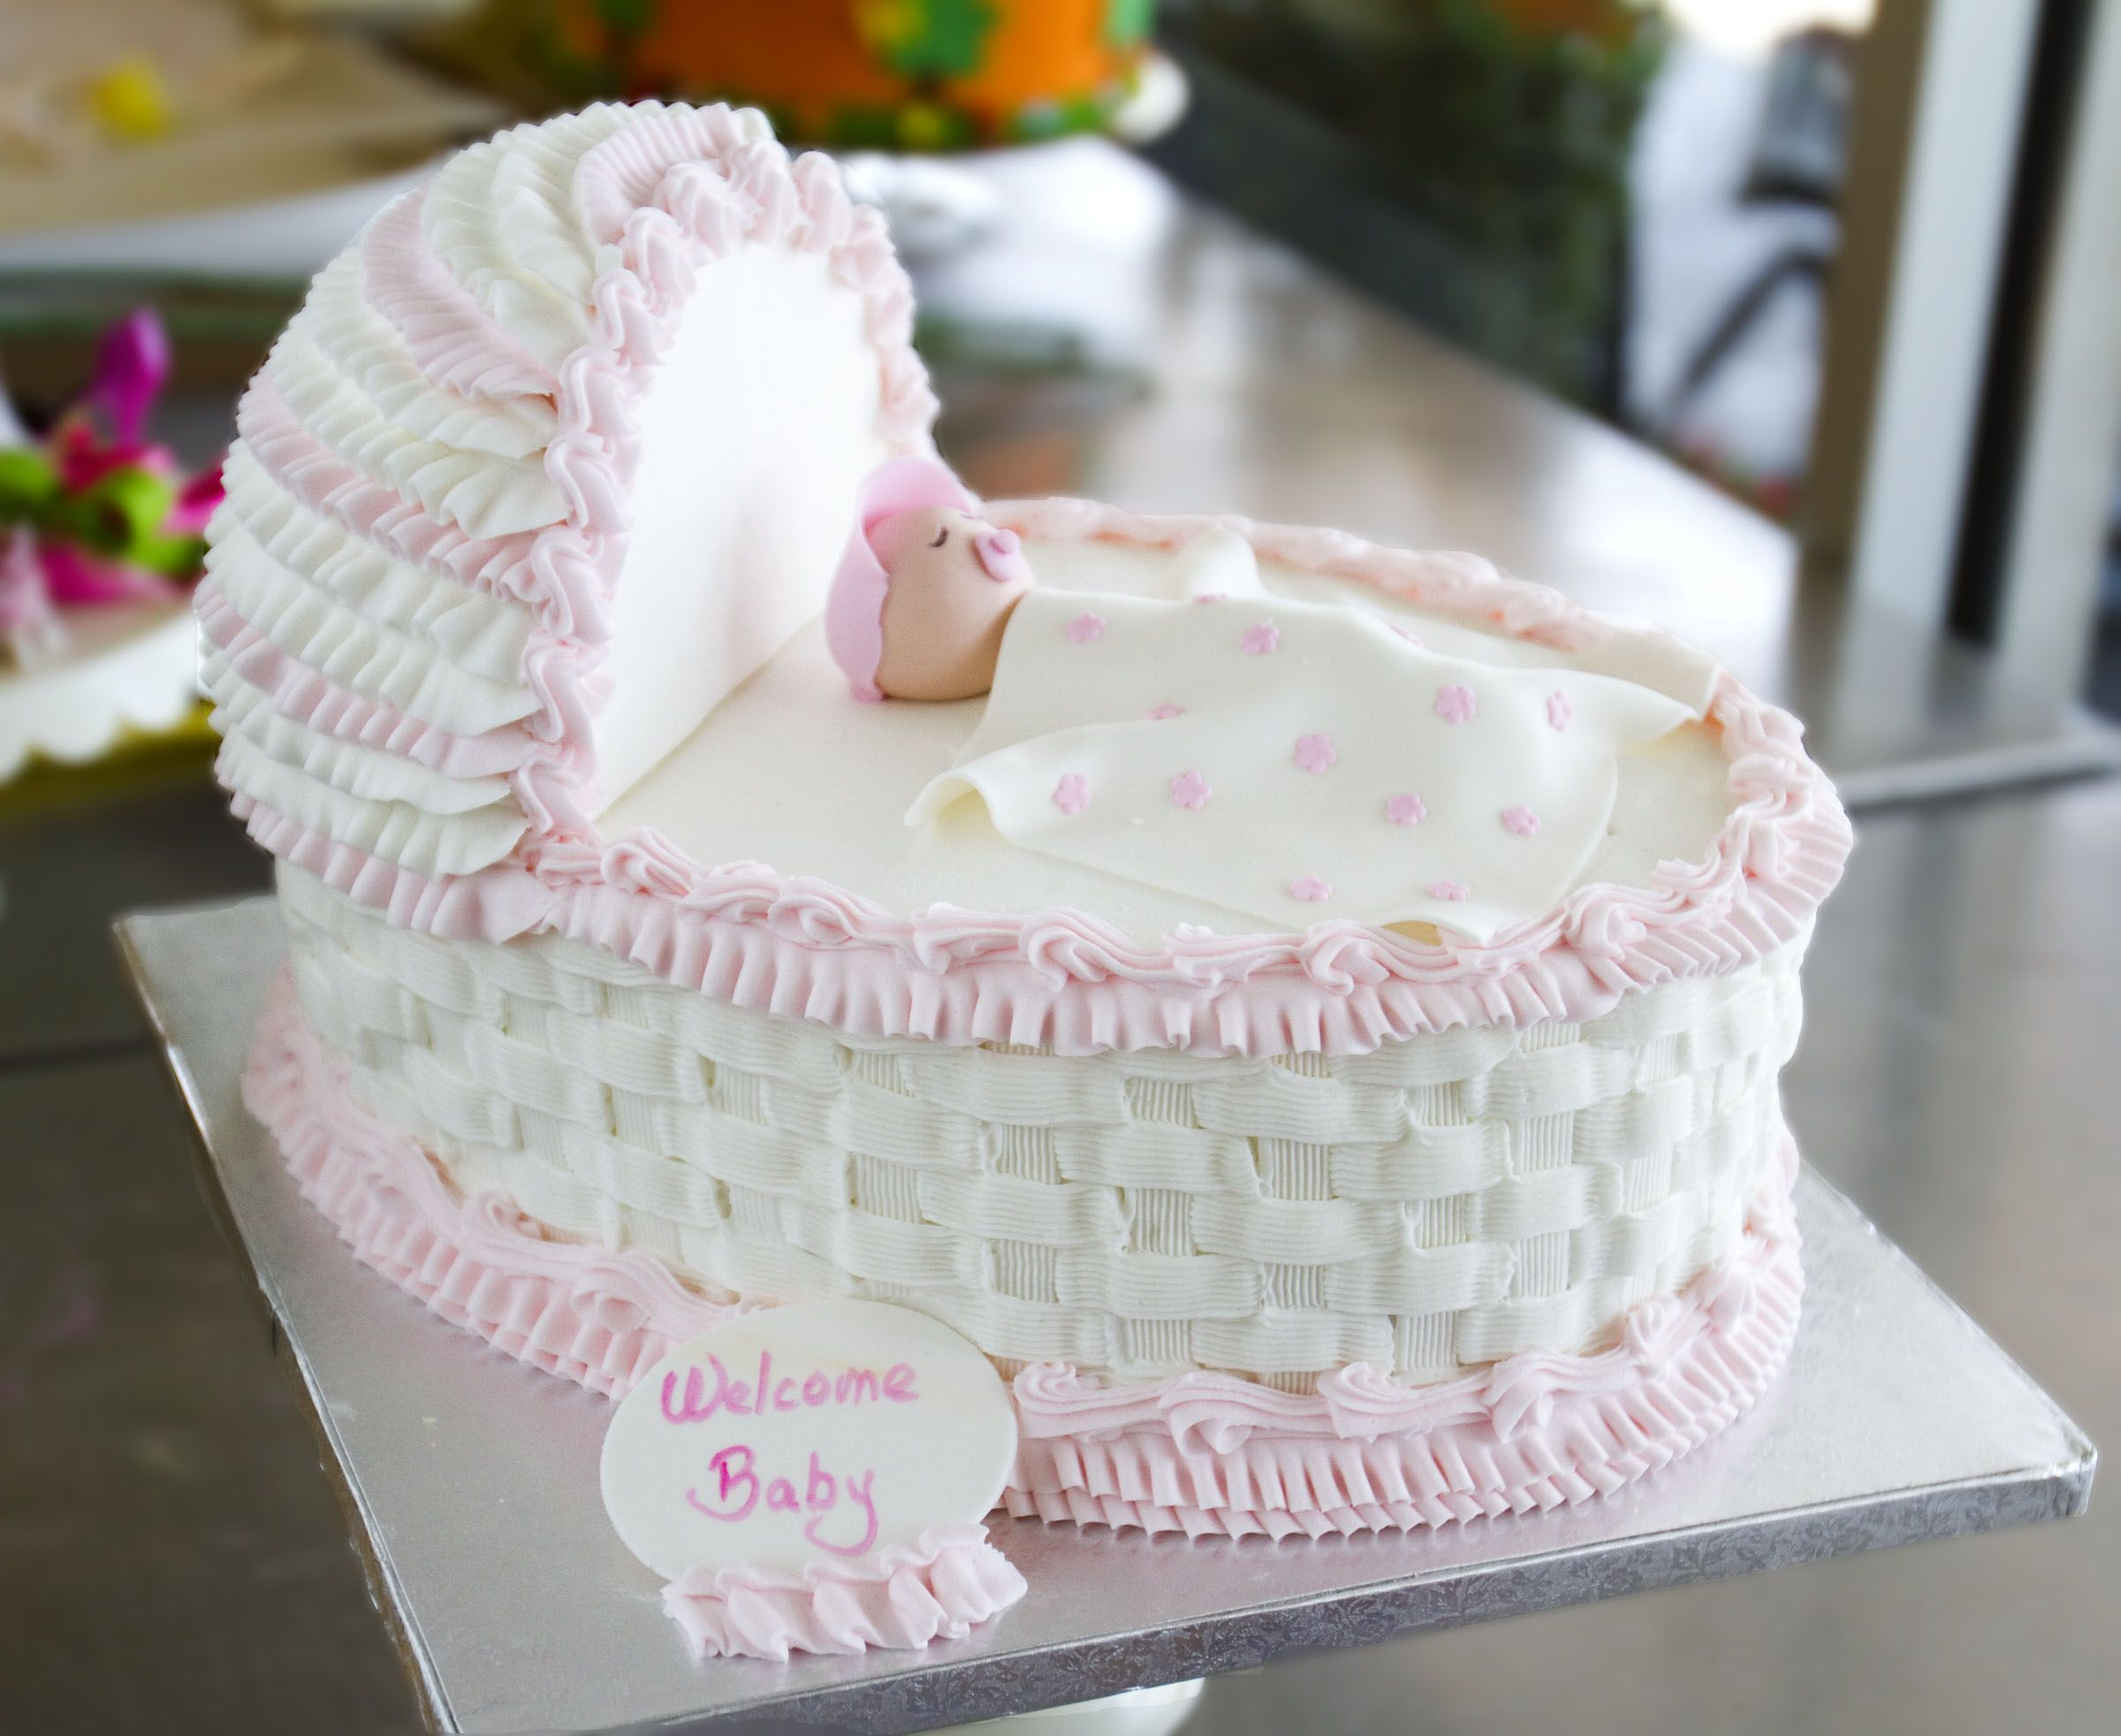 This Bassinet Cake Is Perfect For A Baby Shower! Cake # 007.